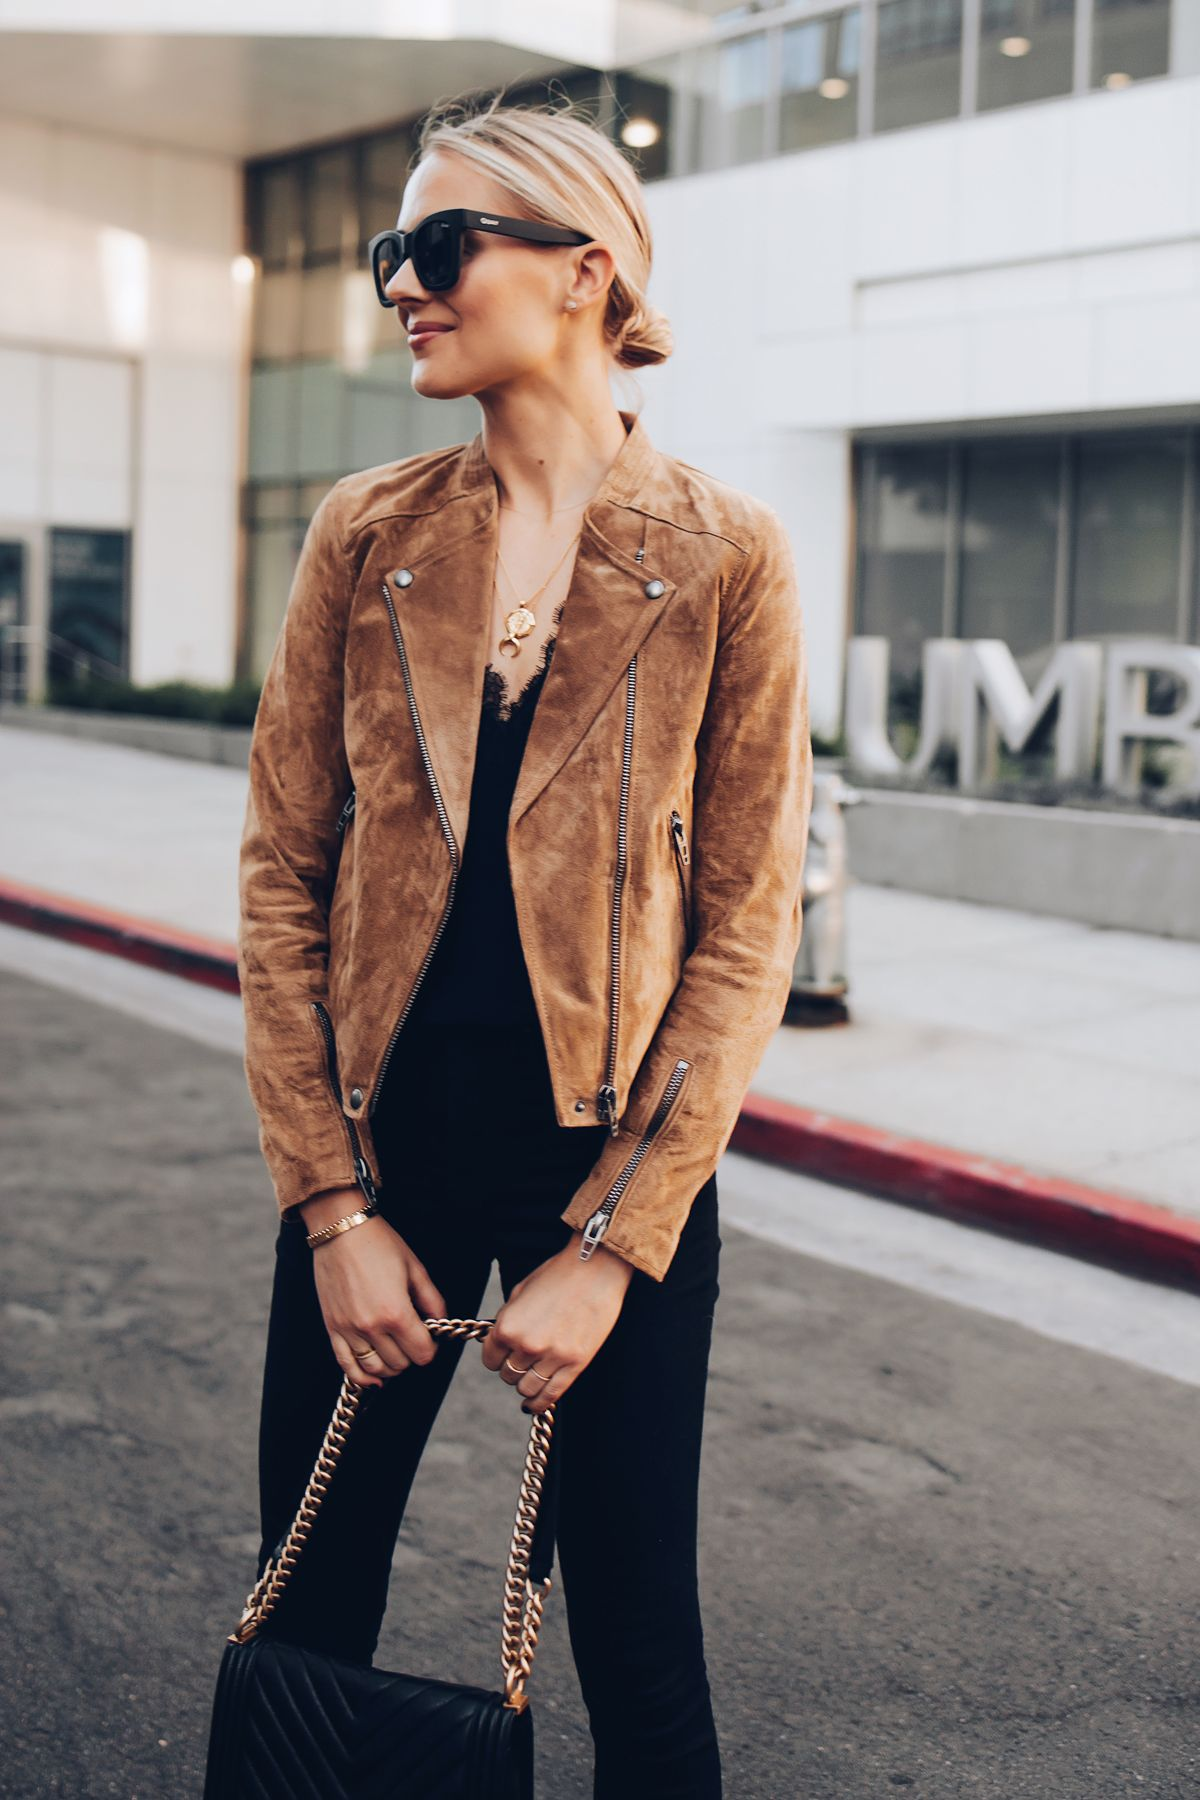 94760cc6864 Blonde Woman Wearing Blanknyc Tan Suede Moto Jacket Black Lace Cami Black  Skinny Jeans Outfit Fashion Jackson San Diego Fashion Blogger Street Style